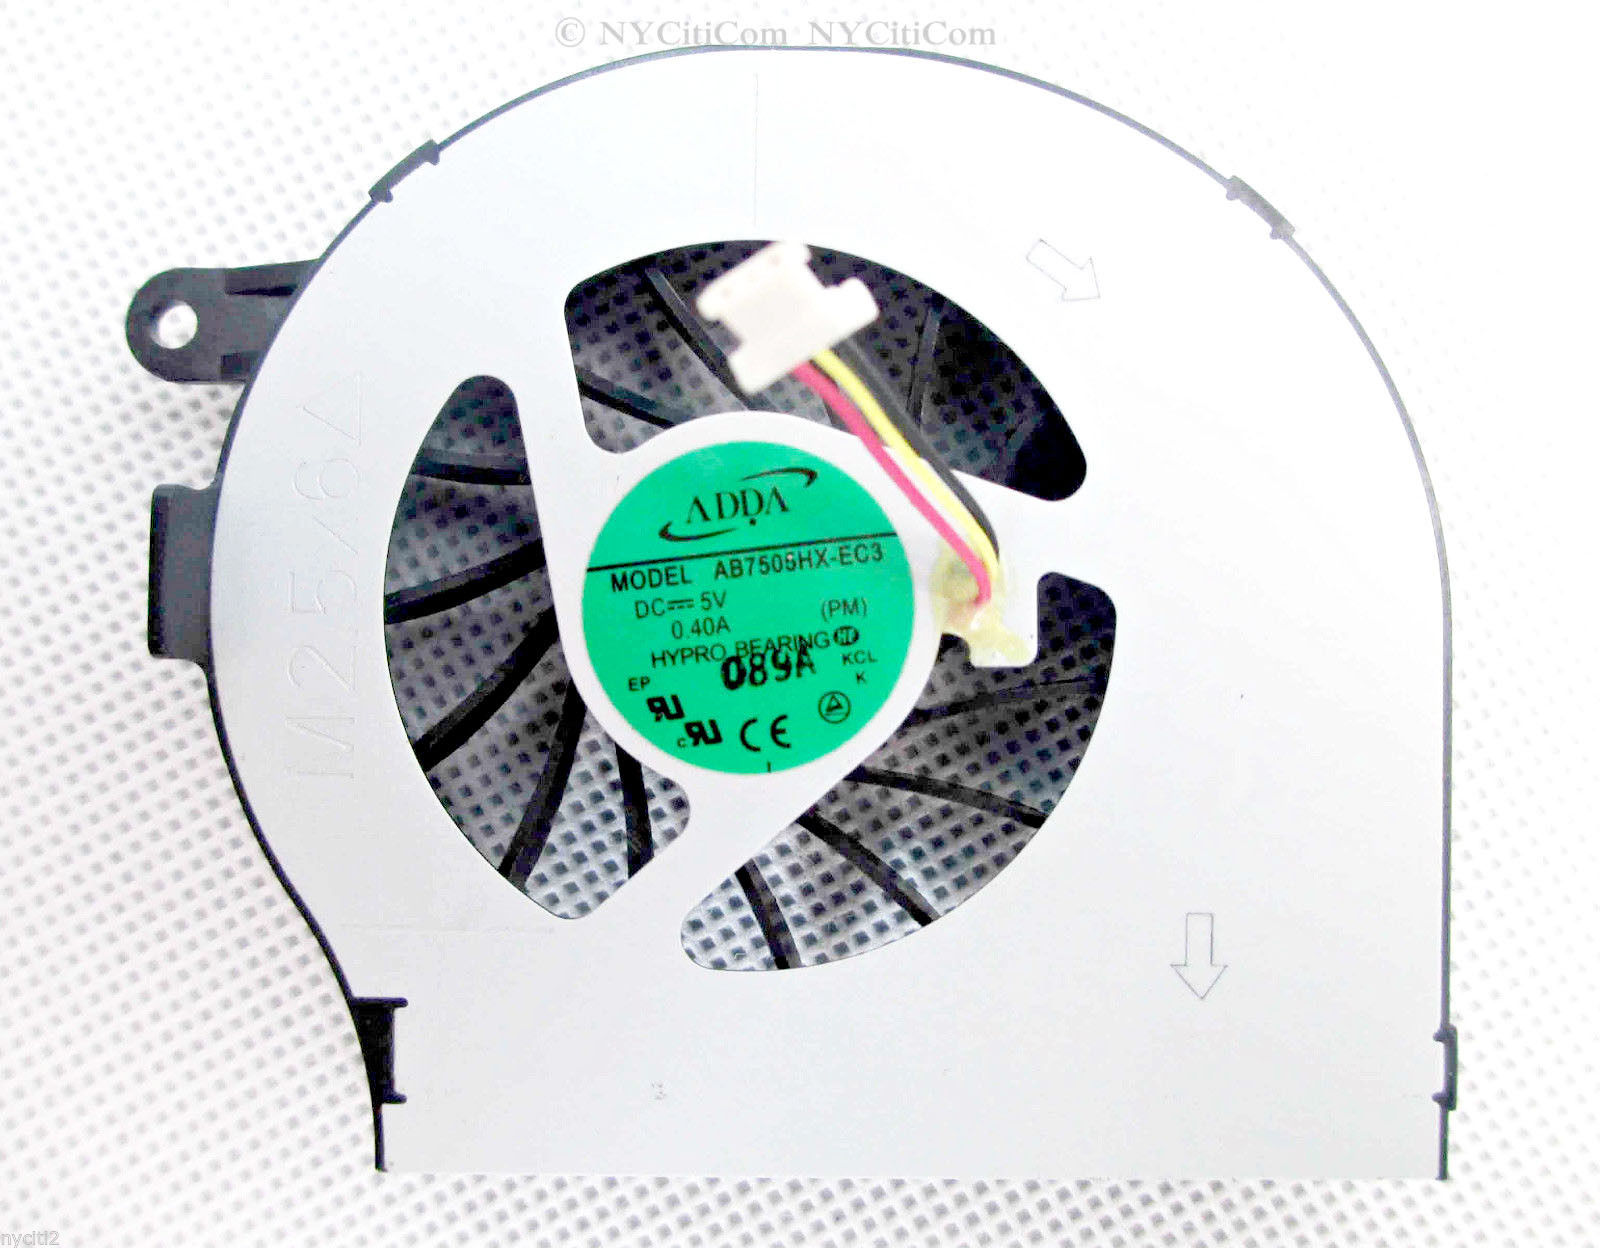 New Adda AB7505HX-EC3 (PM) CPU Fan 612354-001 white HP Compaq CQ72 G72 Series